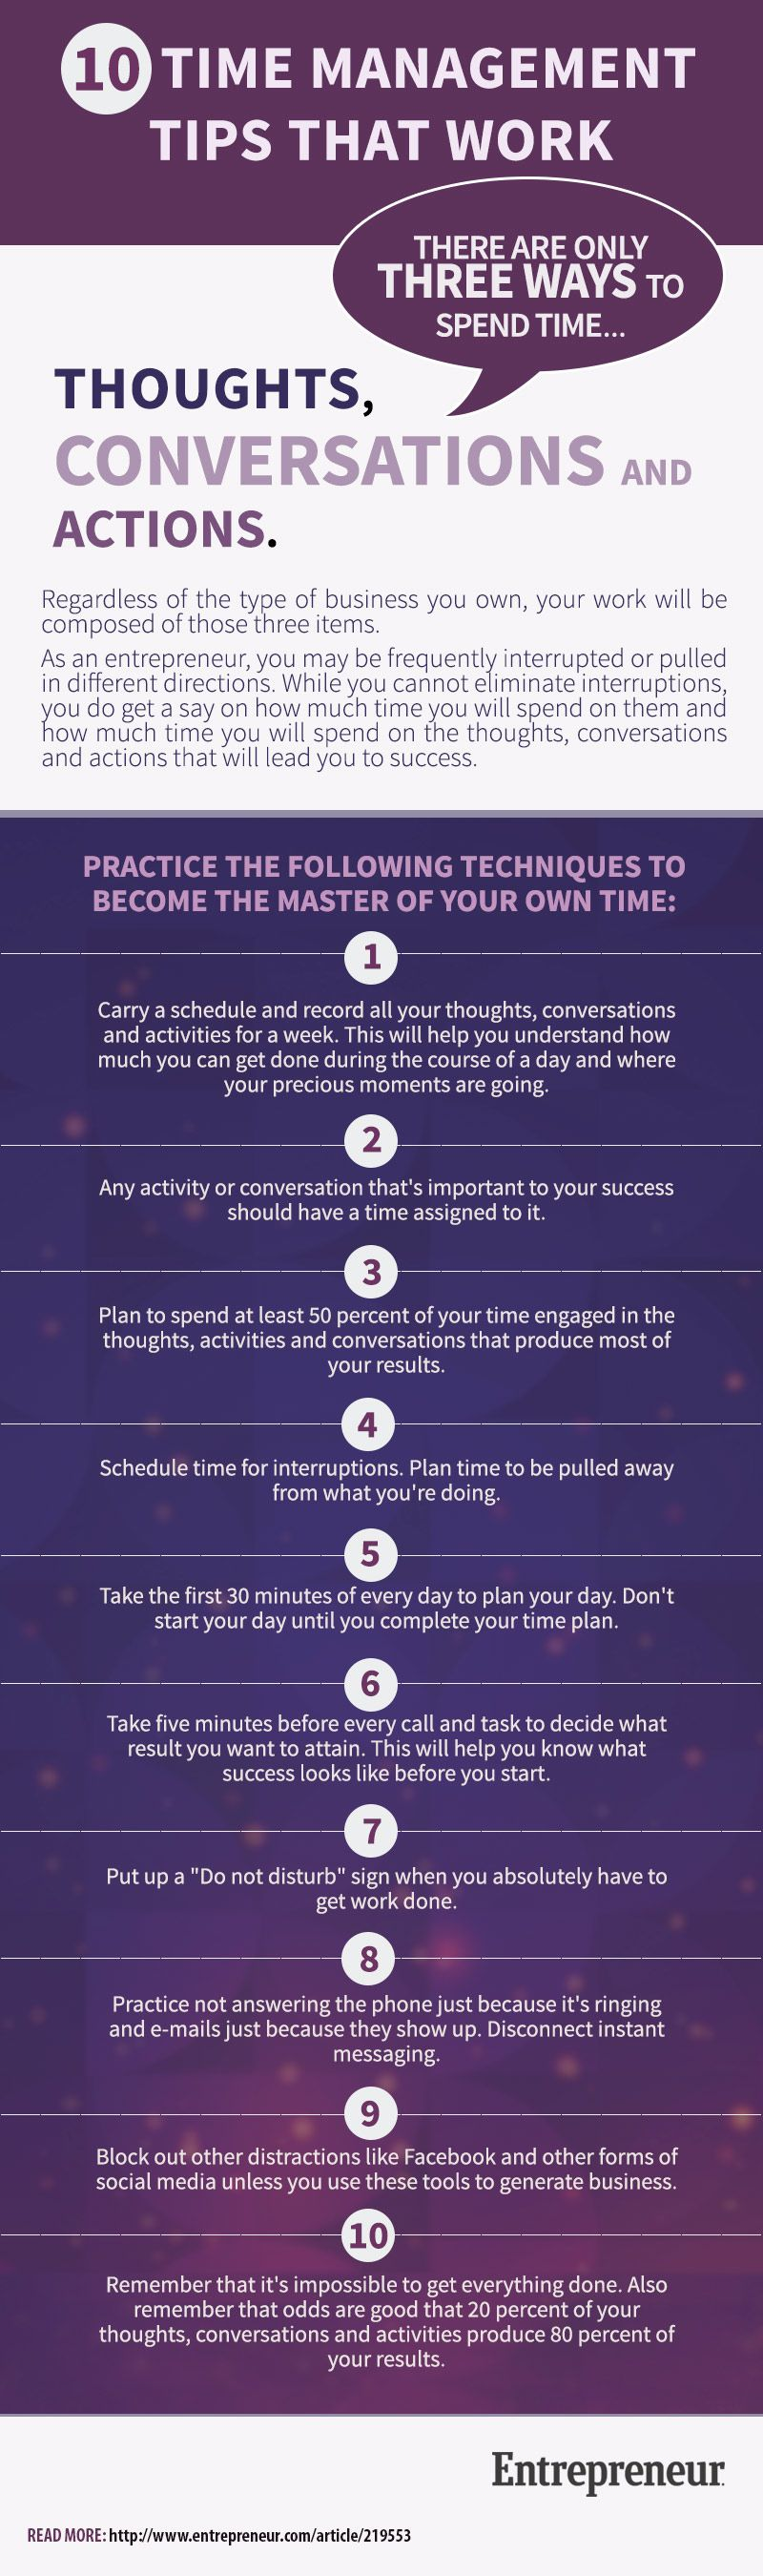 10 Terrific Time Management Tips | Business Tips | Time ... - photo#26